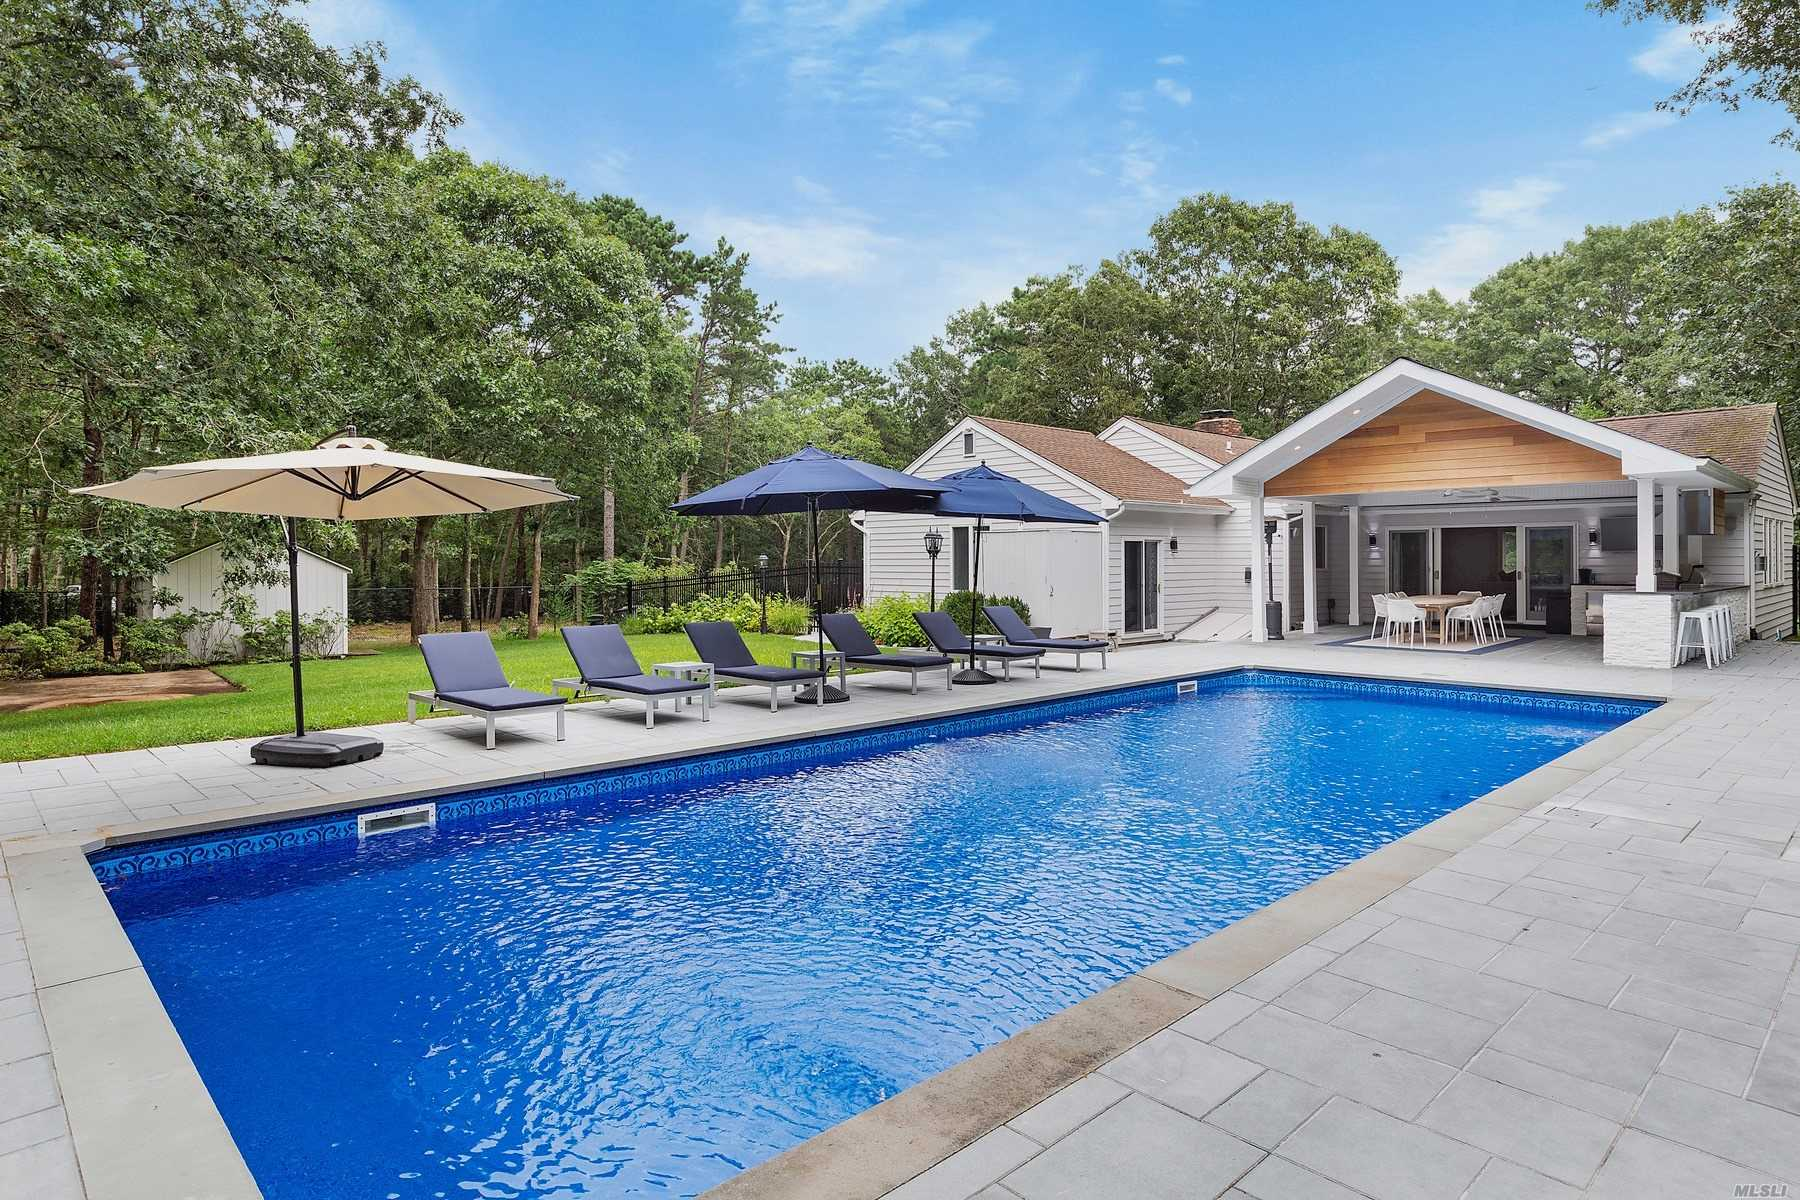 541 Wainscott Northw Rd - East Hampton, New York